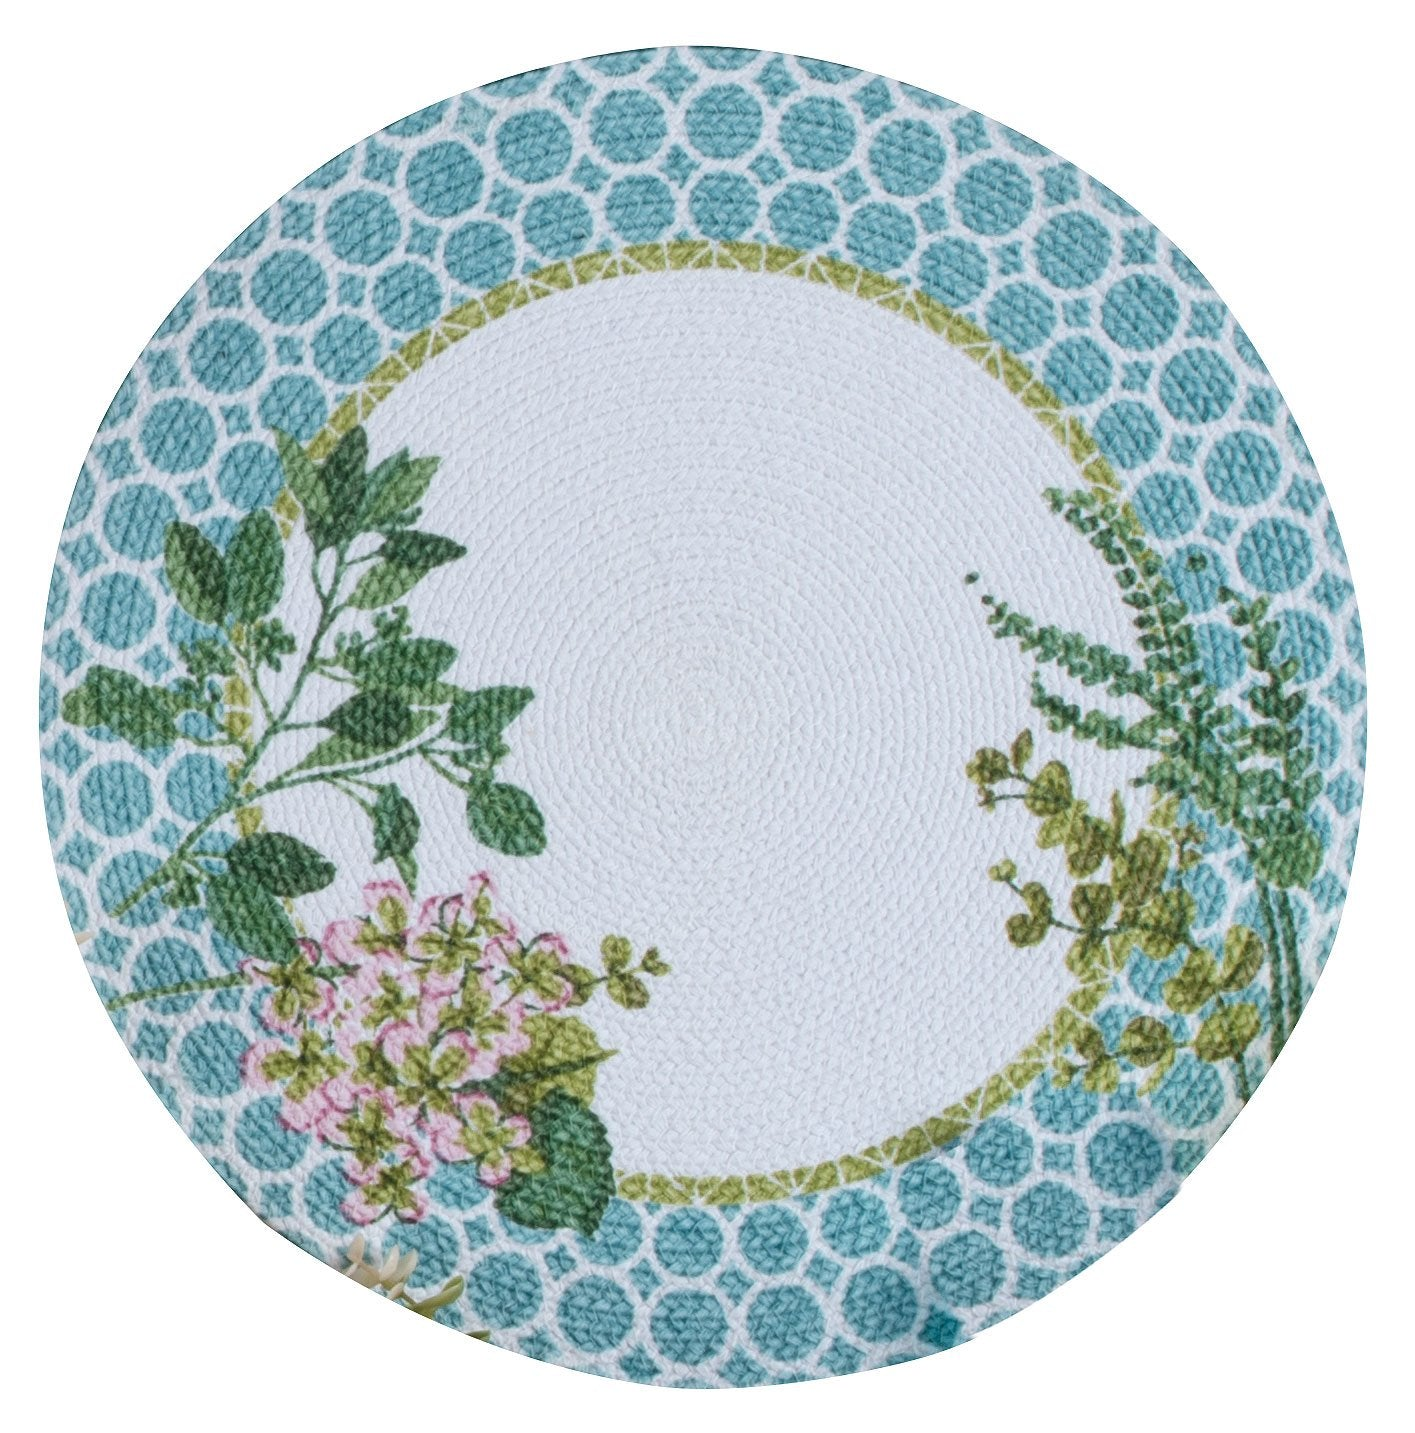 Kay Dee Greenery Braided Round Placemat